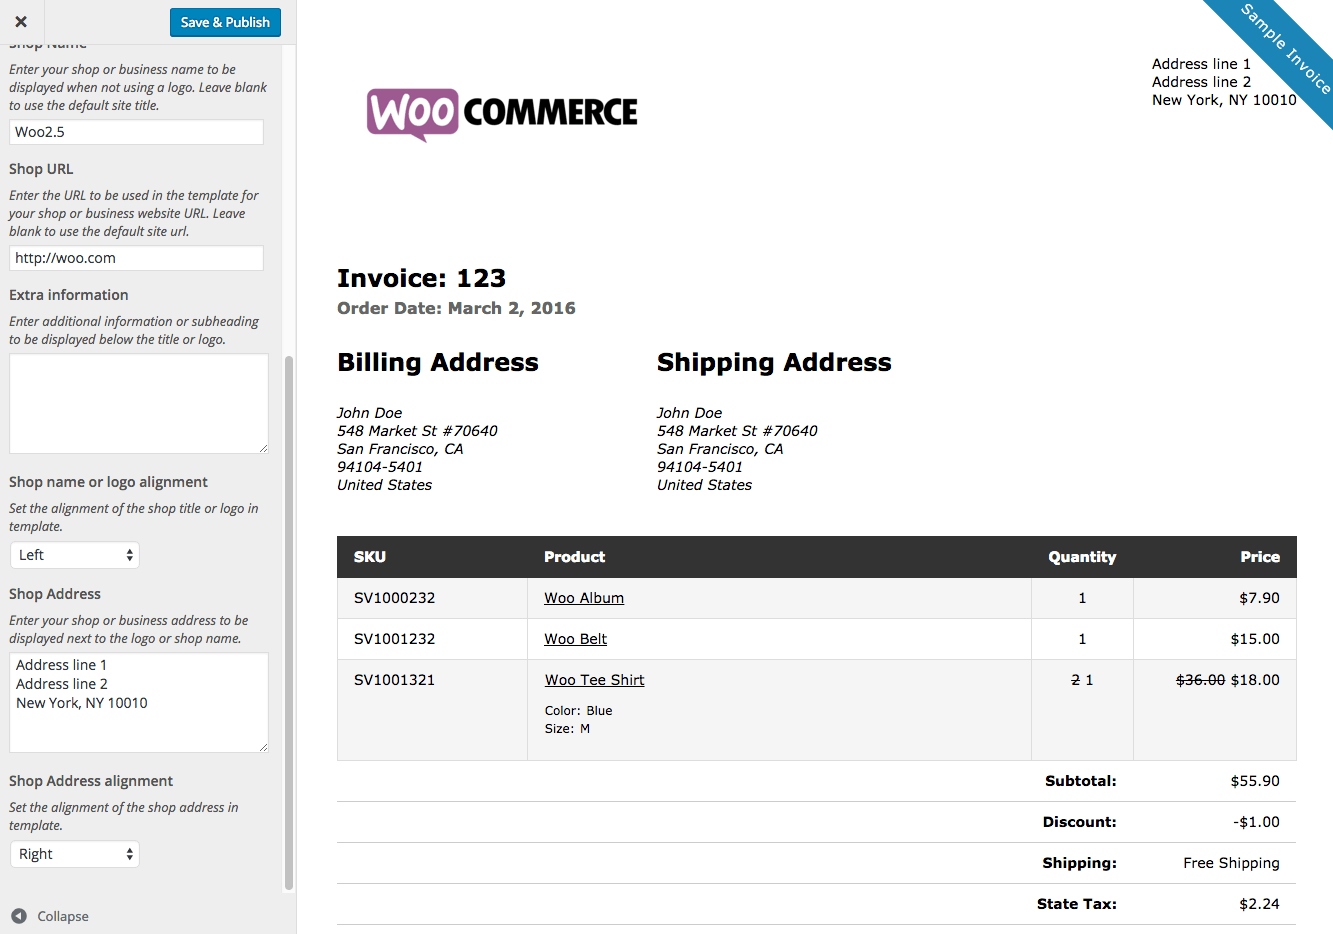 Pxworkoutfreeus  Winning Woocommerce Print Invoices Amp Packing Lists  Woocommerce Docs With Engaging Woocommerce Print Invoices  Packing Lists Customizer With Amazing Tax Receipts By Year Also Washington Flyer Receipt In Addition Mobile Receipt Printer For Ipad And Confirm Receipt Of As Well As Bread Pudding Receipt Additionally Cash Register Receipts Bpa From Docswoocommercecom With Pxworkoutfreeus  Engaging Woocommerce Print Invoices Amp Packing Lists  Woocommerce Docs With Amazing Woocommerce Print Invoices  Packing Lists Customizer And Winning Tax Receipts By Year Also Washington Flyer Receipt In Addition Mobile Receipt Printer For Ipad From Docswoocommercecom